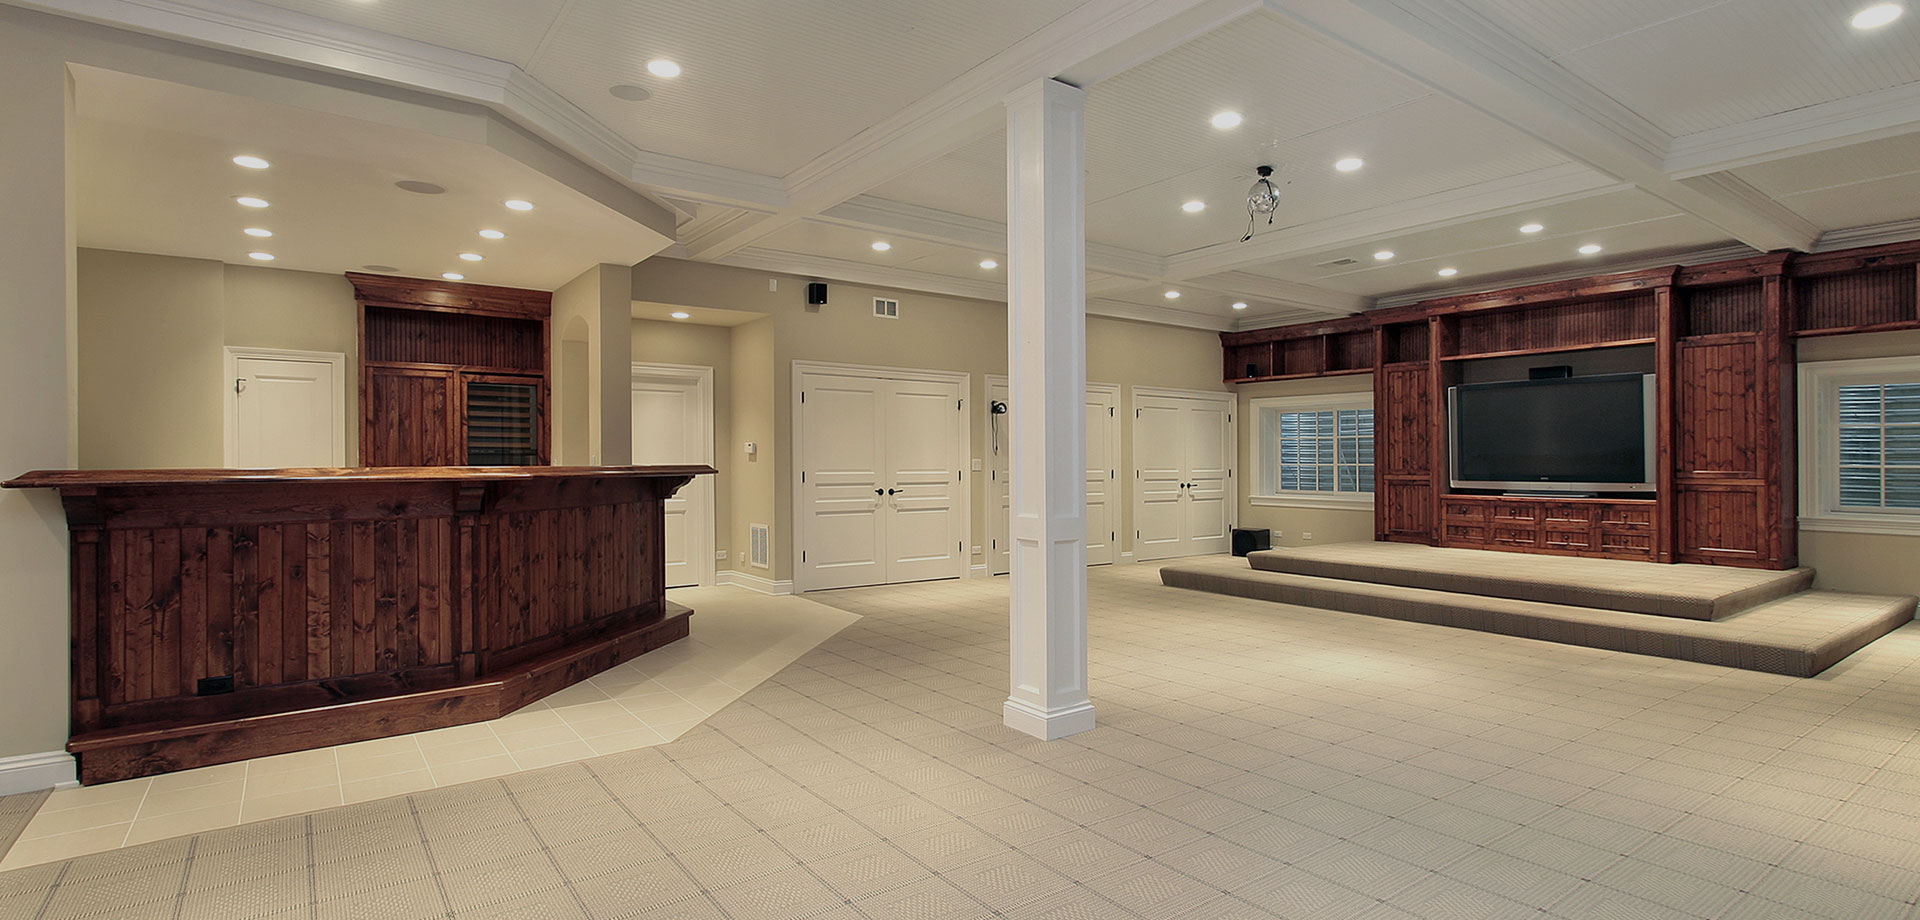 Take Advantage of Your Spacious Basement